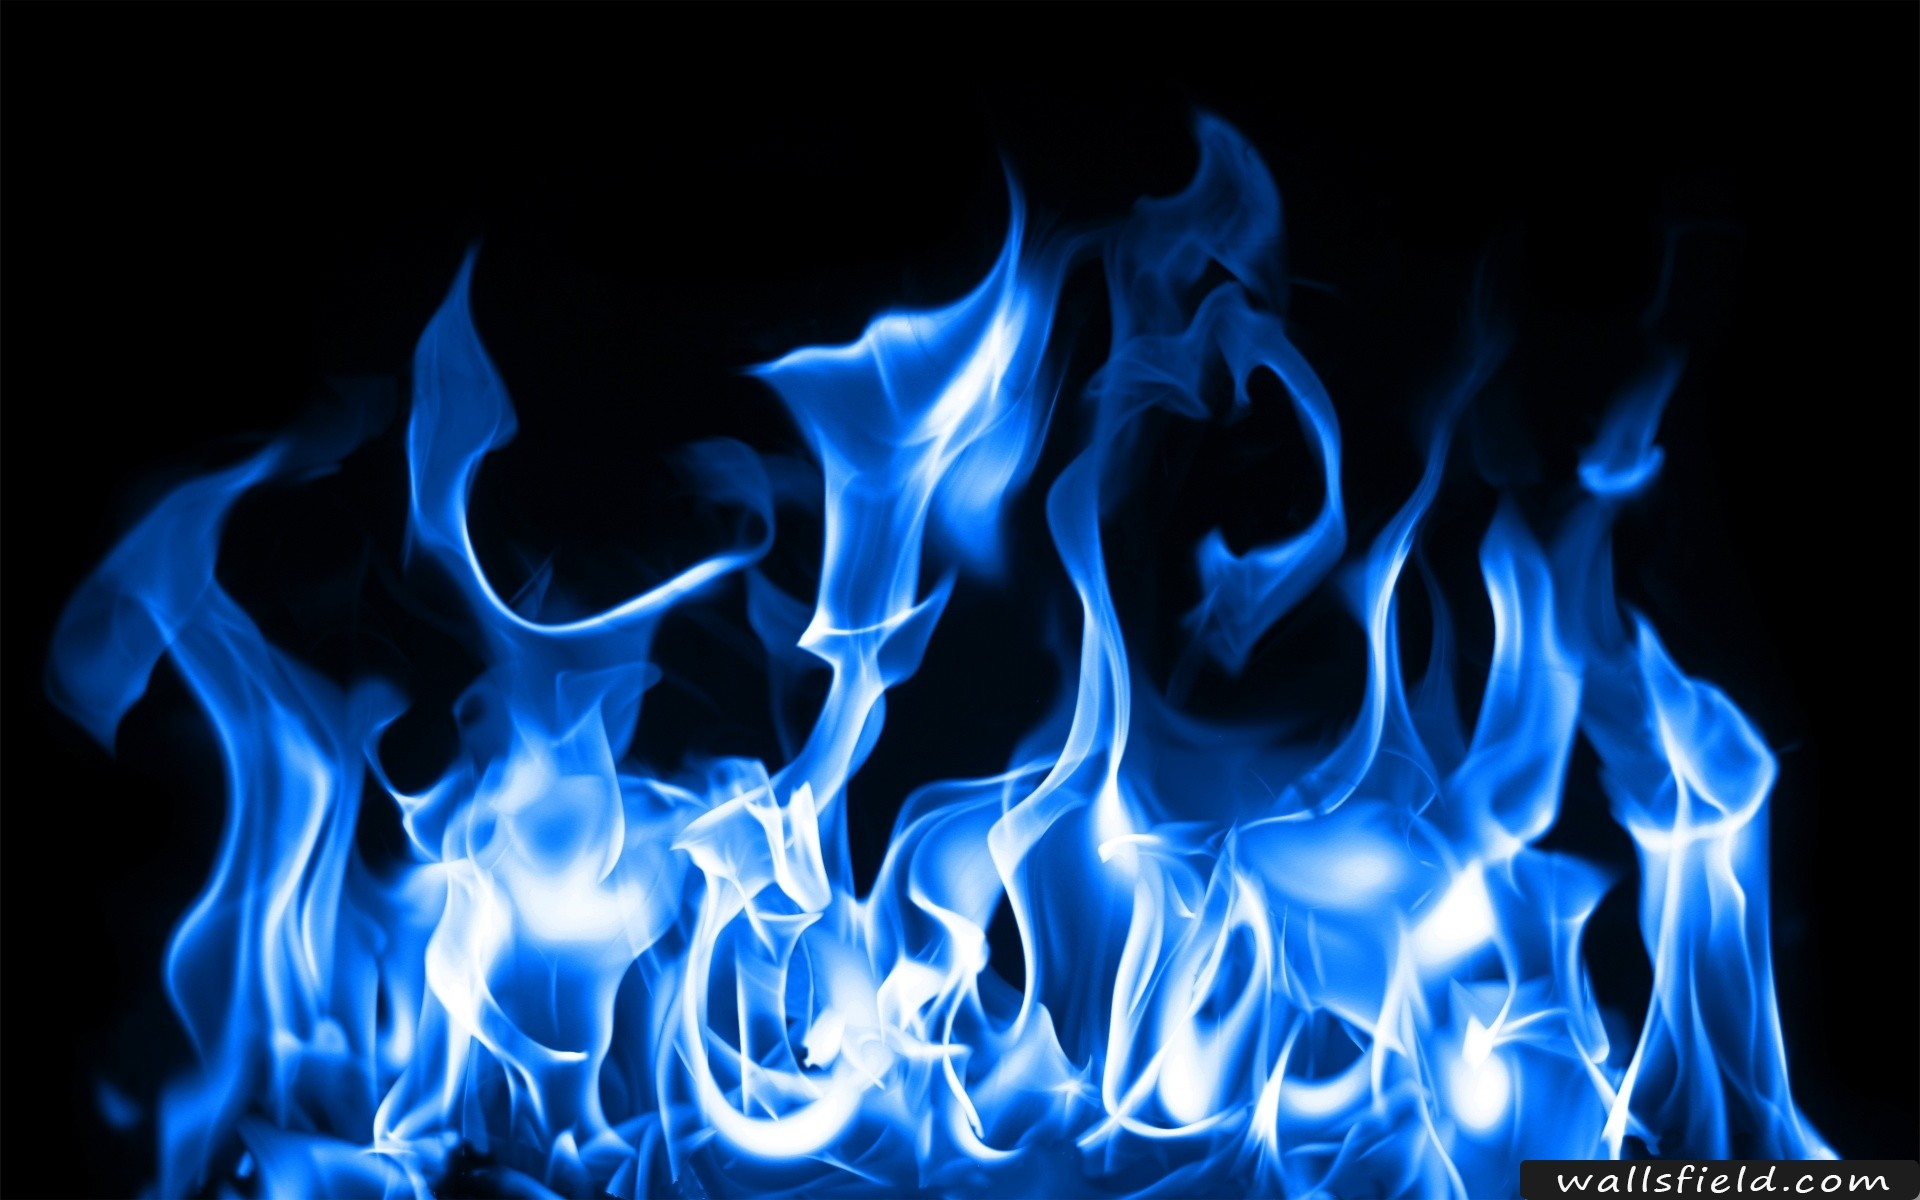 1920x1200 You Can View Download And Comment On Blue Fire Free Hd Wallpapers For Your